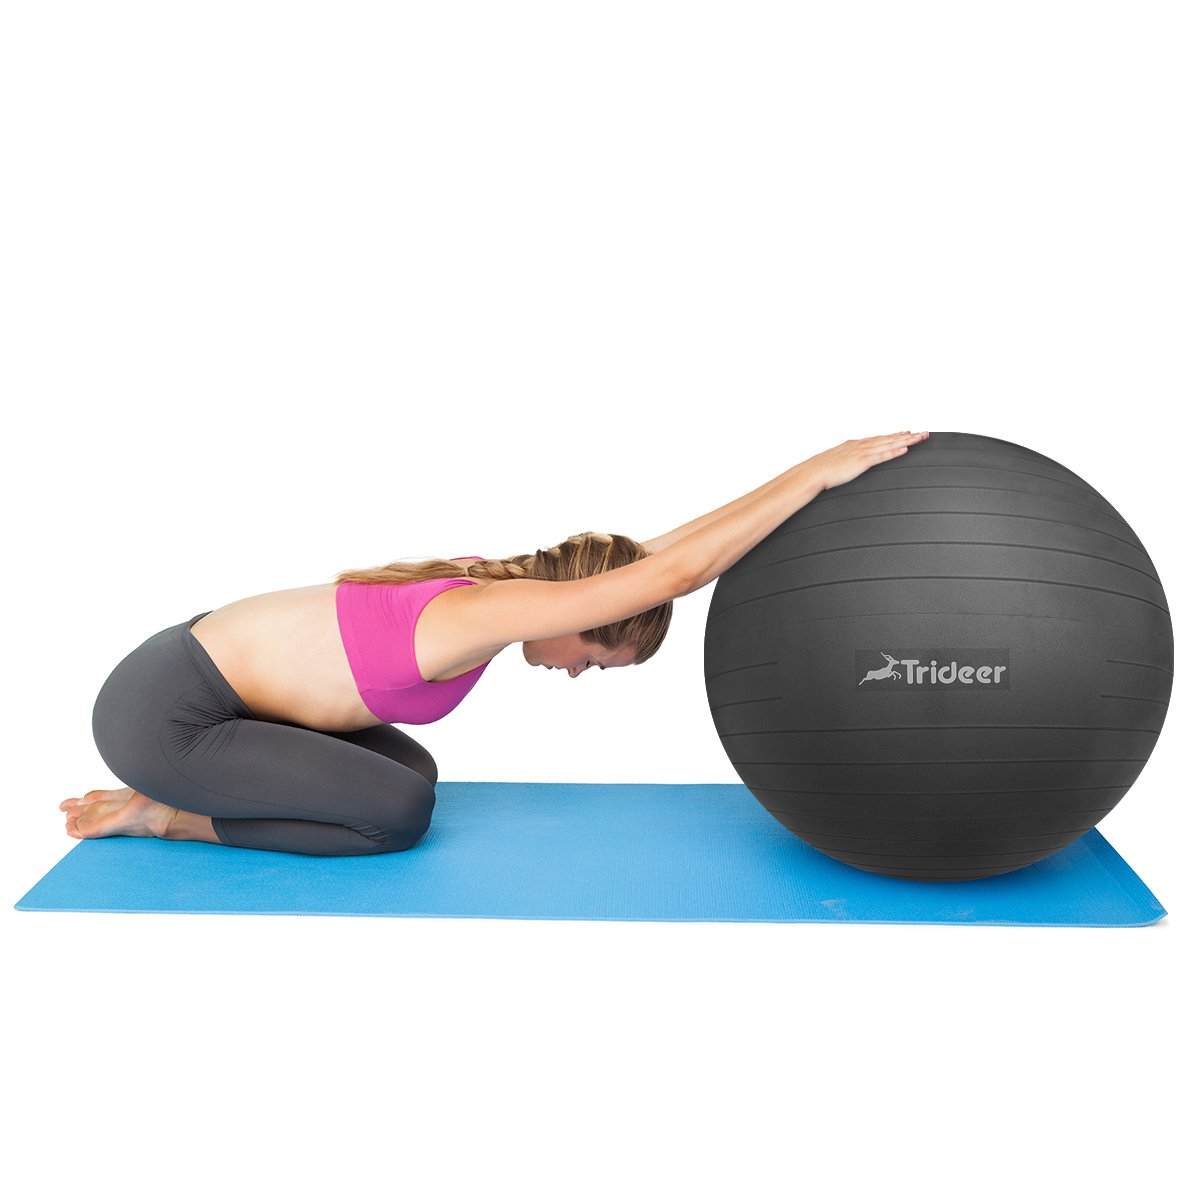 Trideer Exercise Ball (45-85cm) Yoga Ball Chair, Anti-Burst & Extra Thick, Birthing Ball with Quick Pump, Supports 2200lbs, Stability Ball (Office and Home) by Trideer (Image #9)